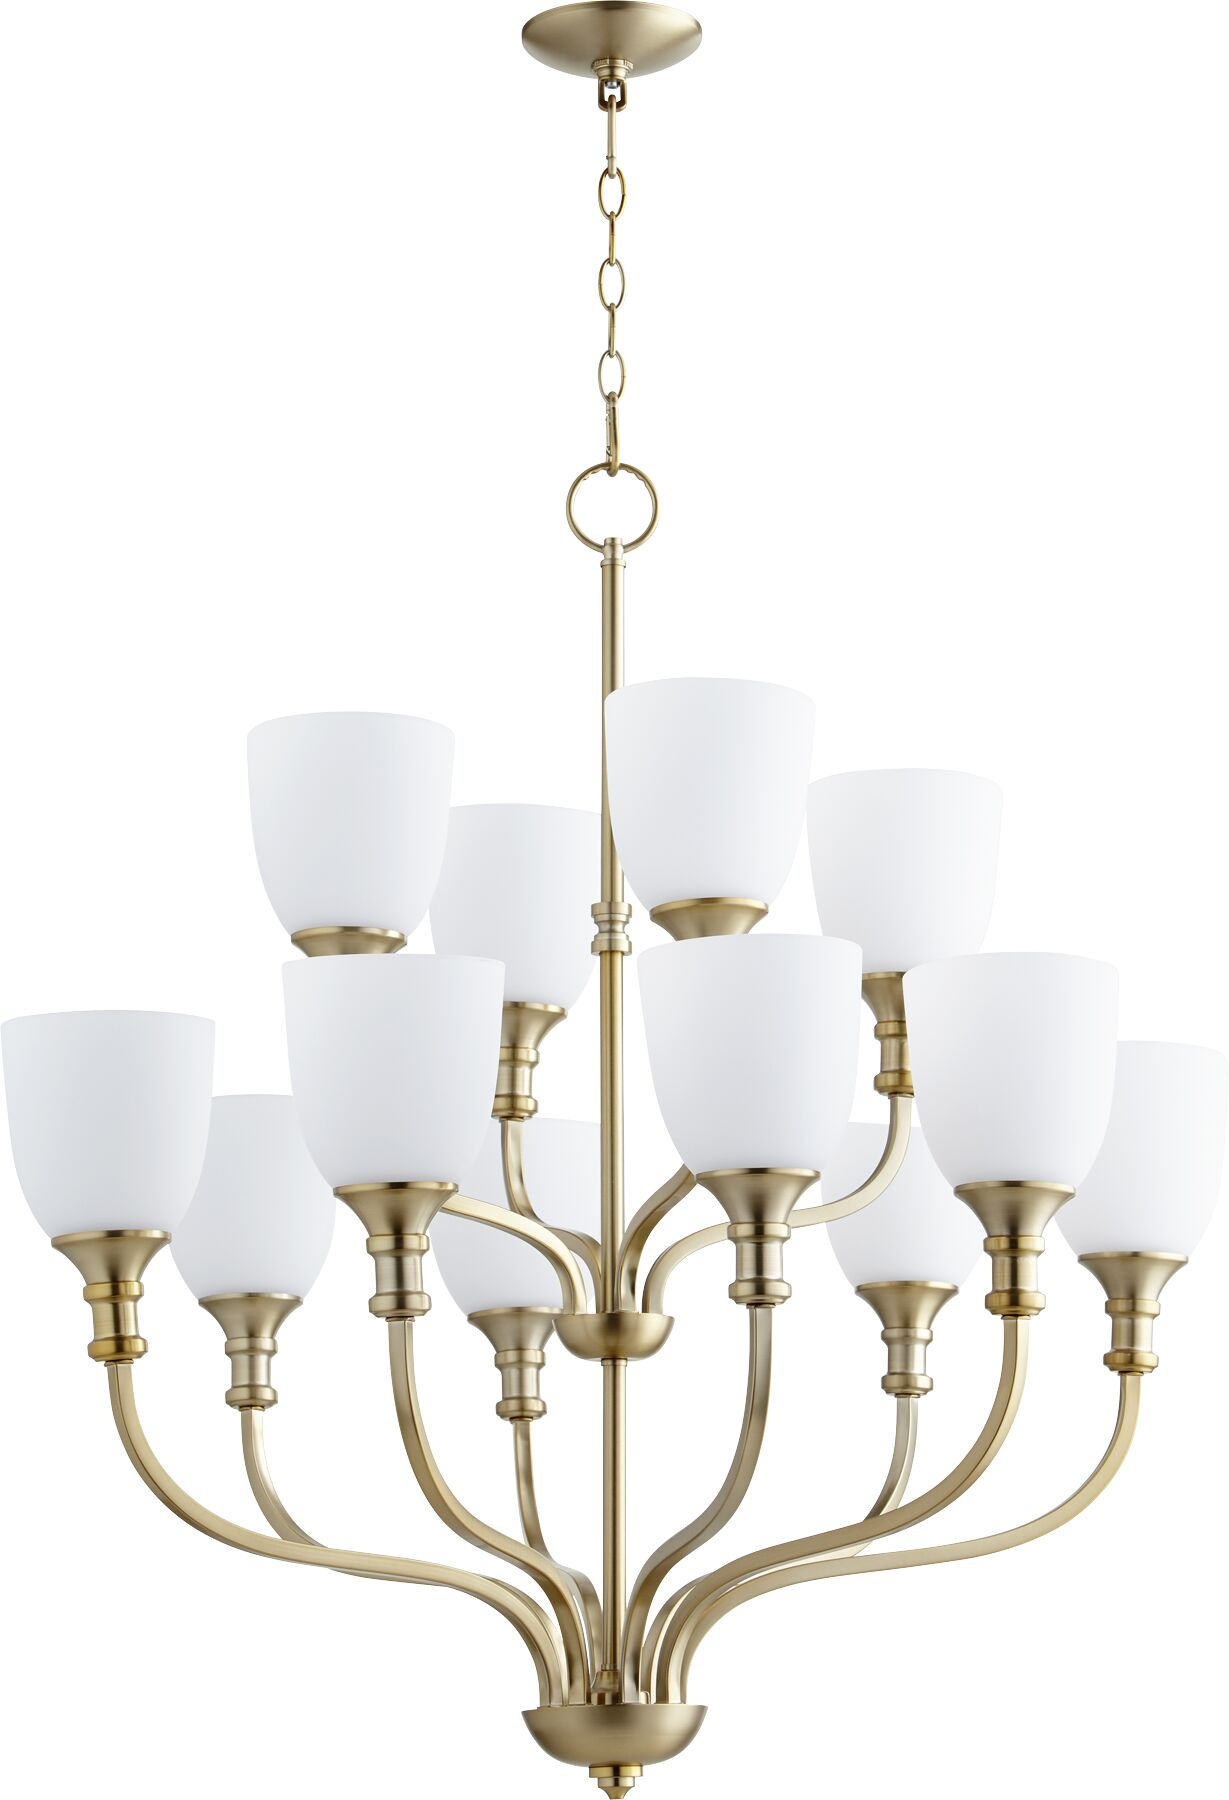 Falbo 12-Light Shaded Chandelier Finish: Satin Nickel, Shade Color: White